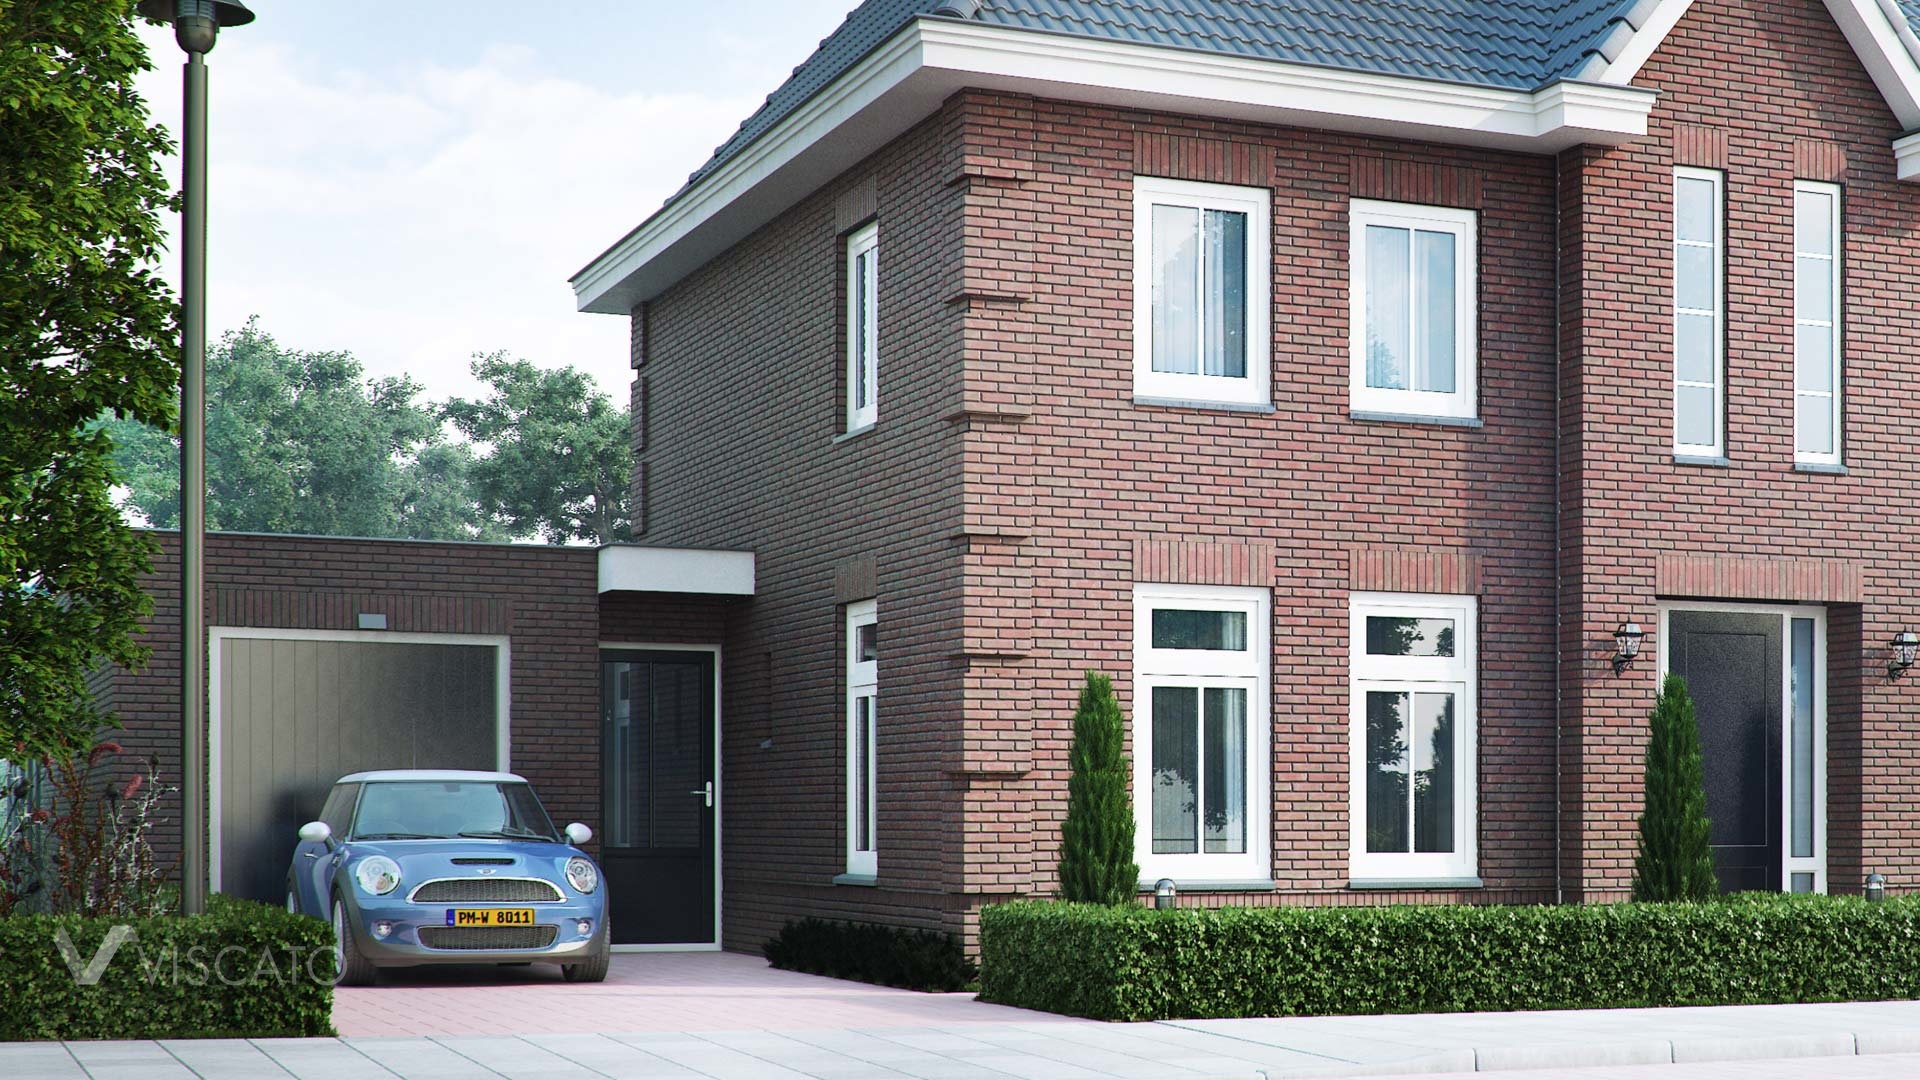 Brick villa house in Holland- front view entrance with garage